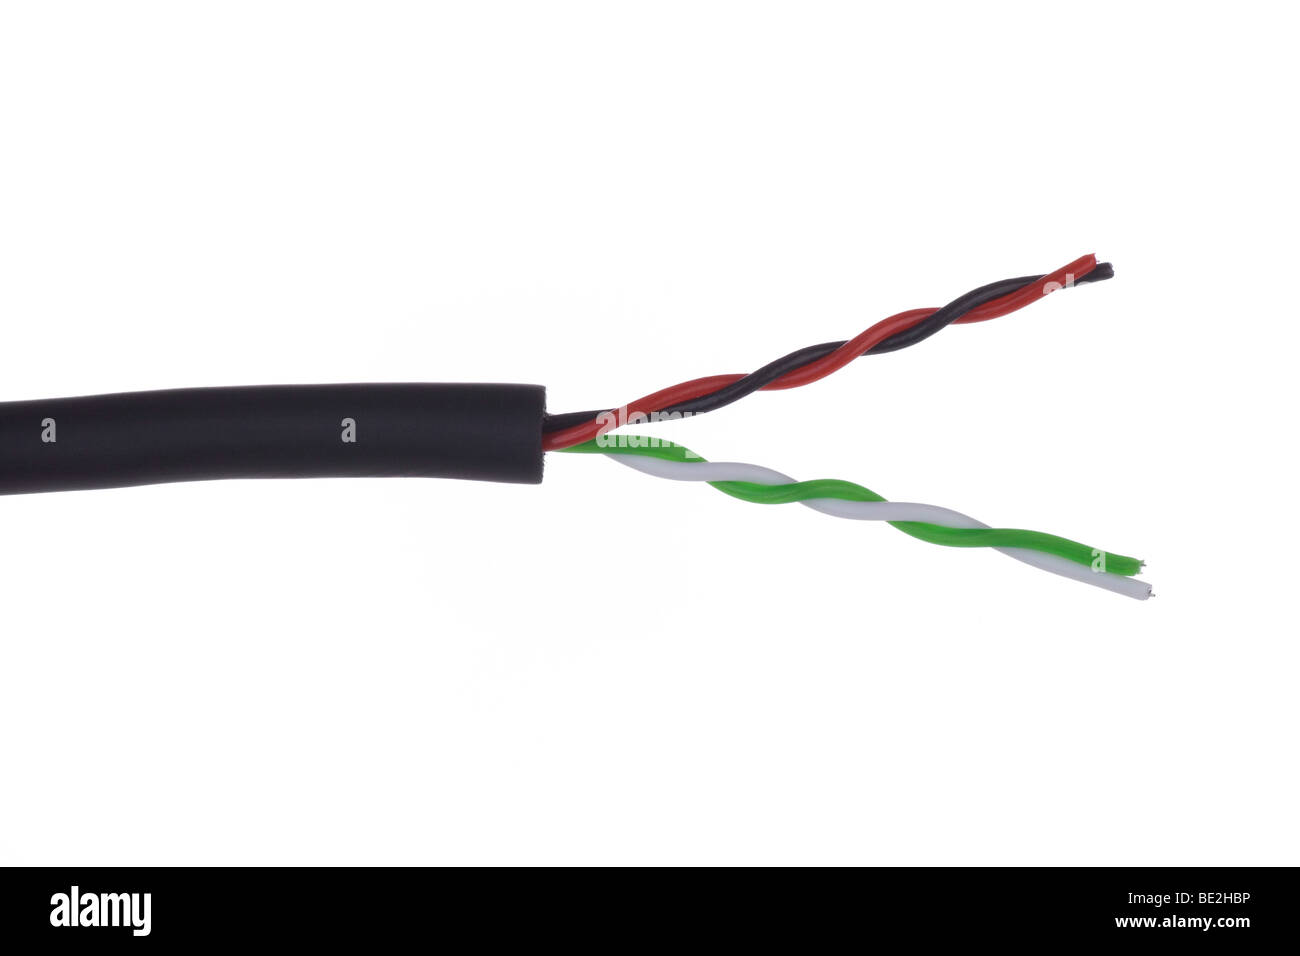 Stripped Cable Stockfotos & Stripped Cable Bilder - Alamy